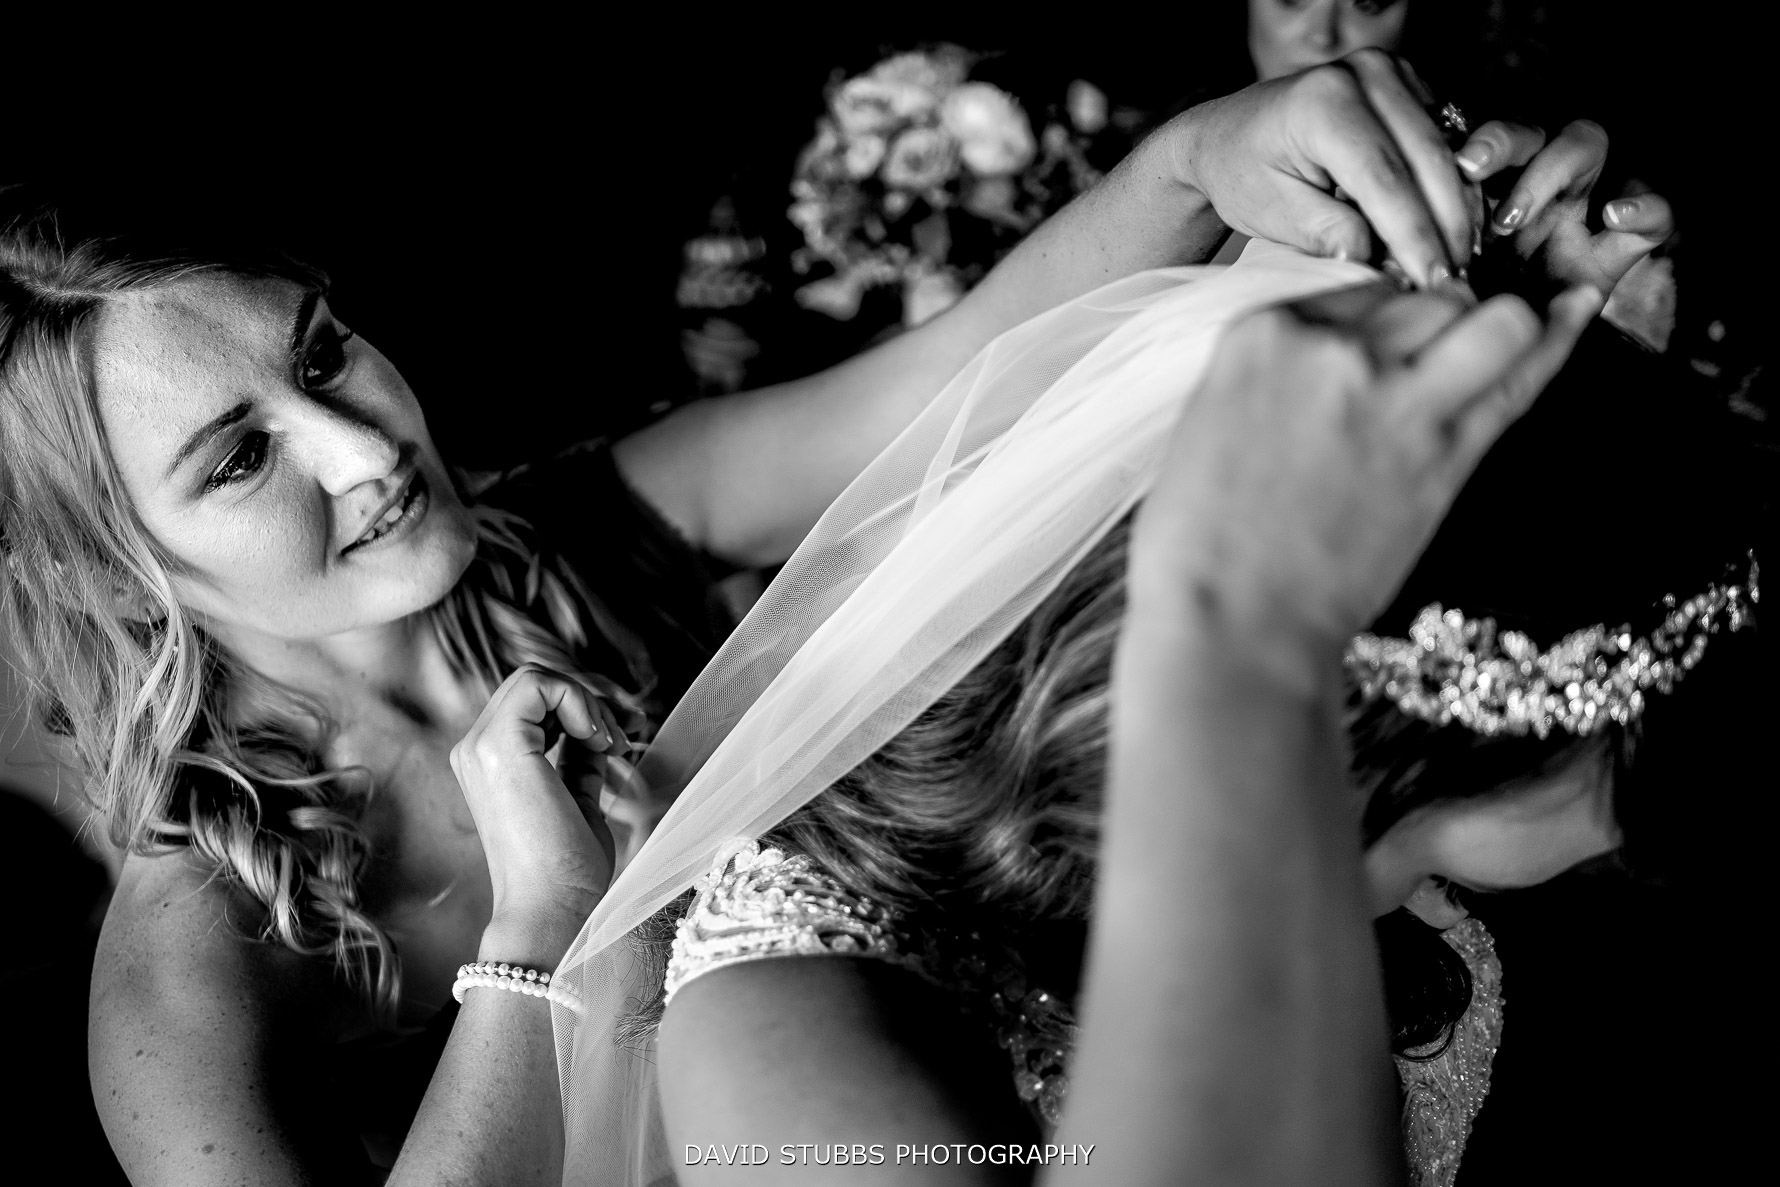 the veil being put into the bride